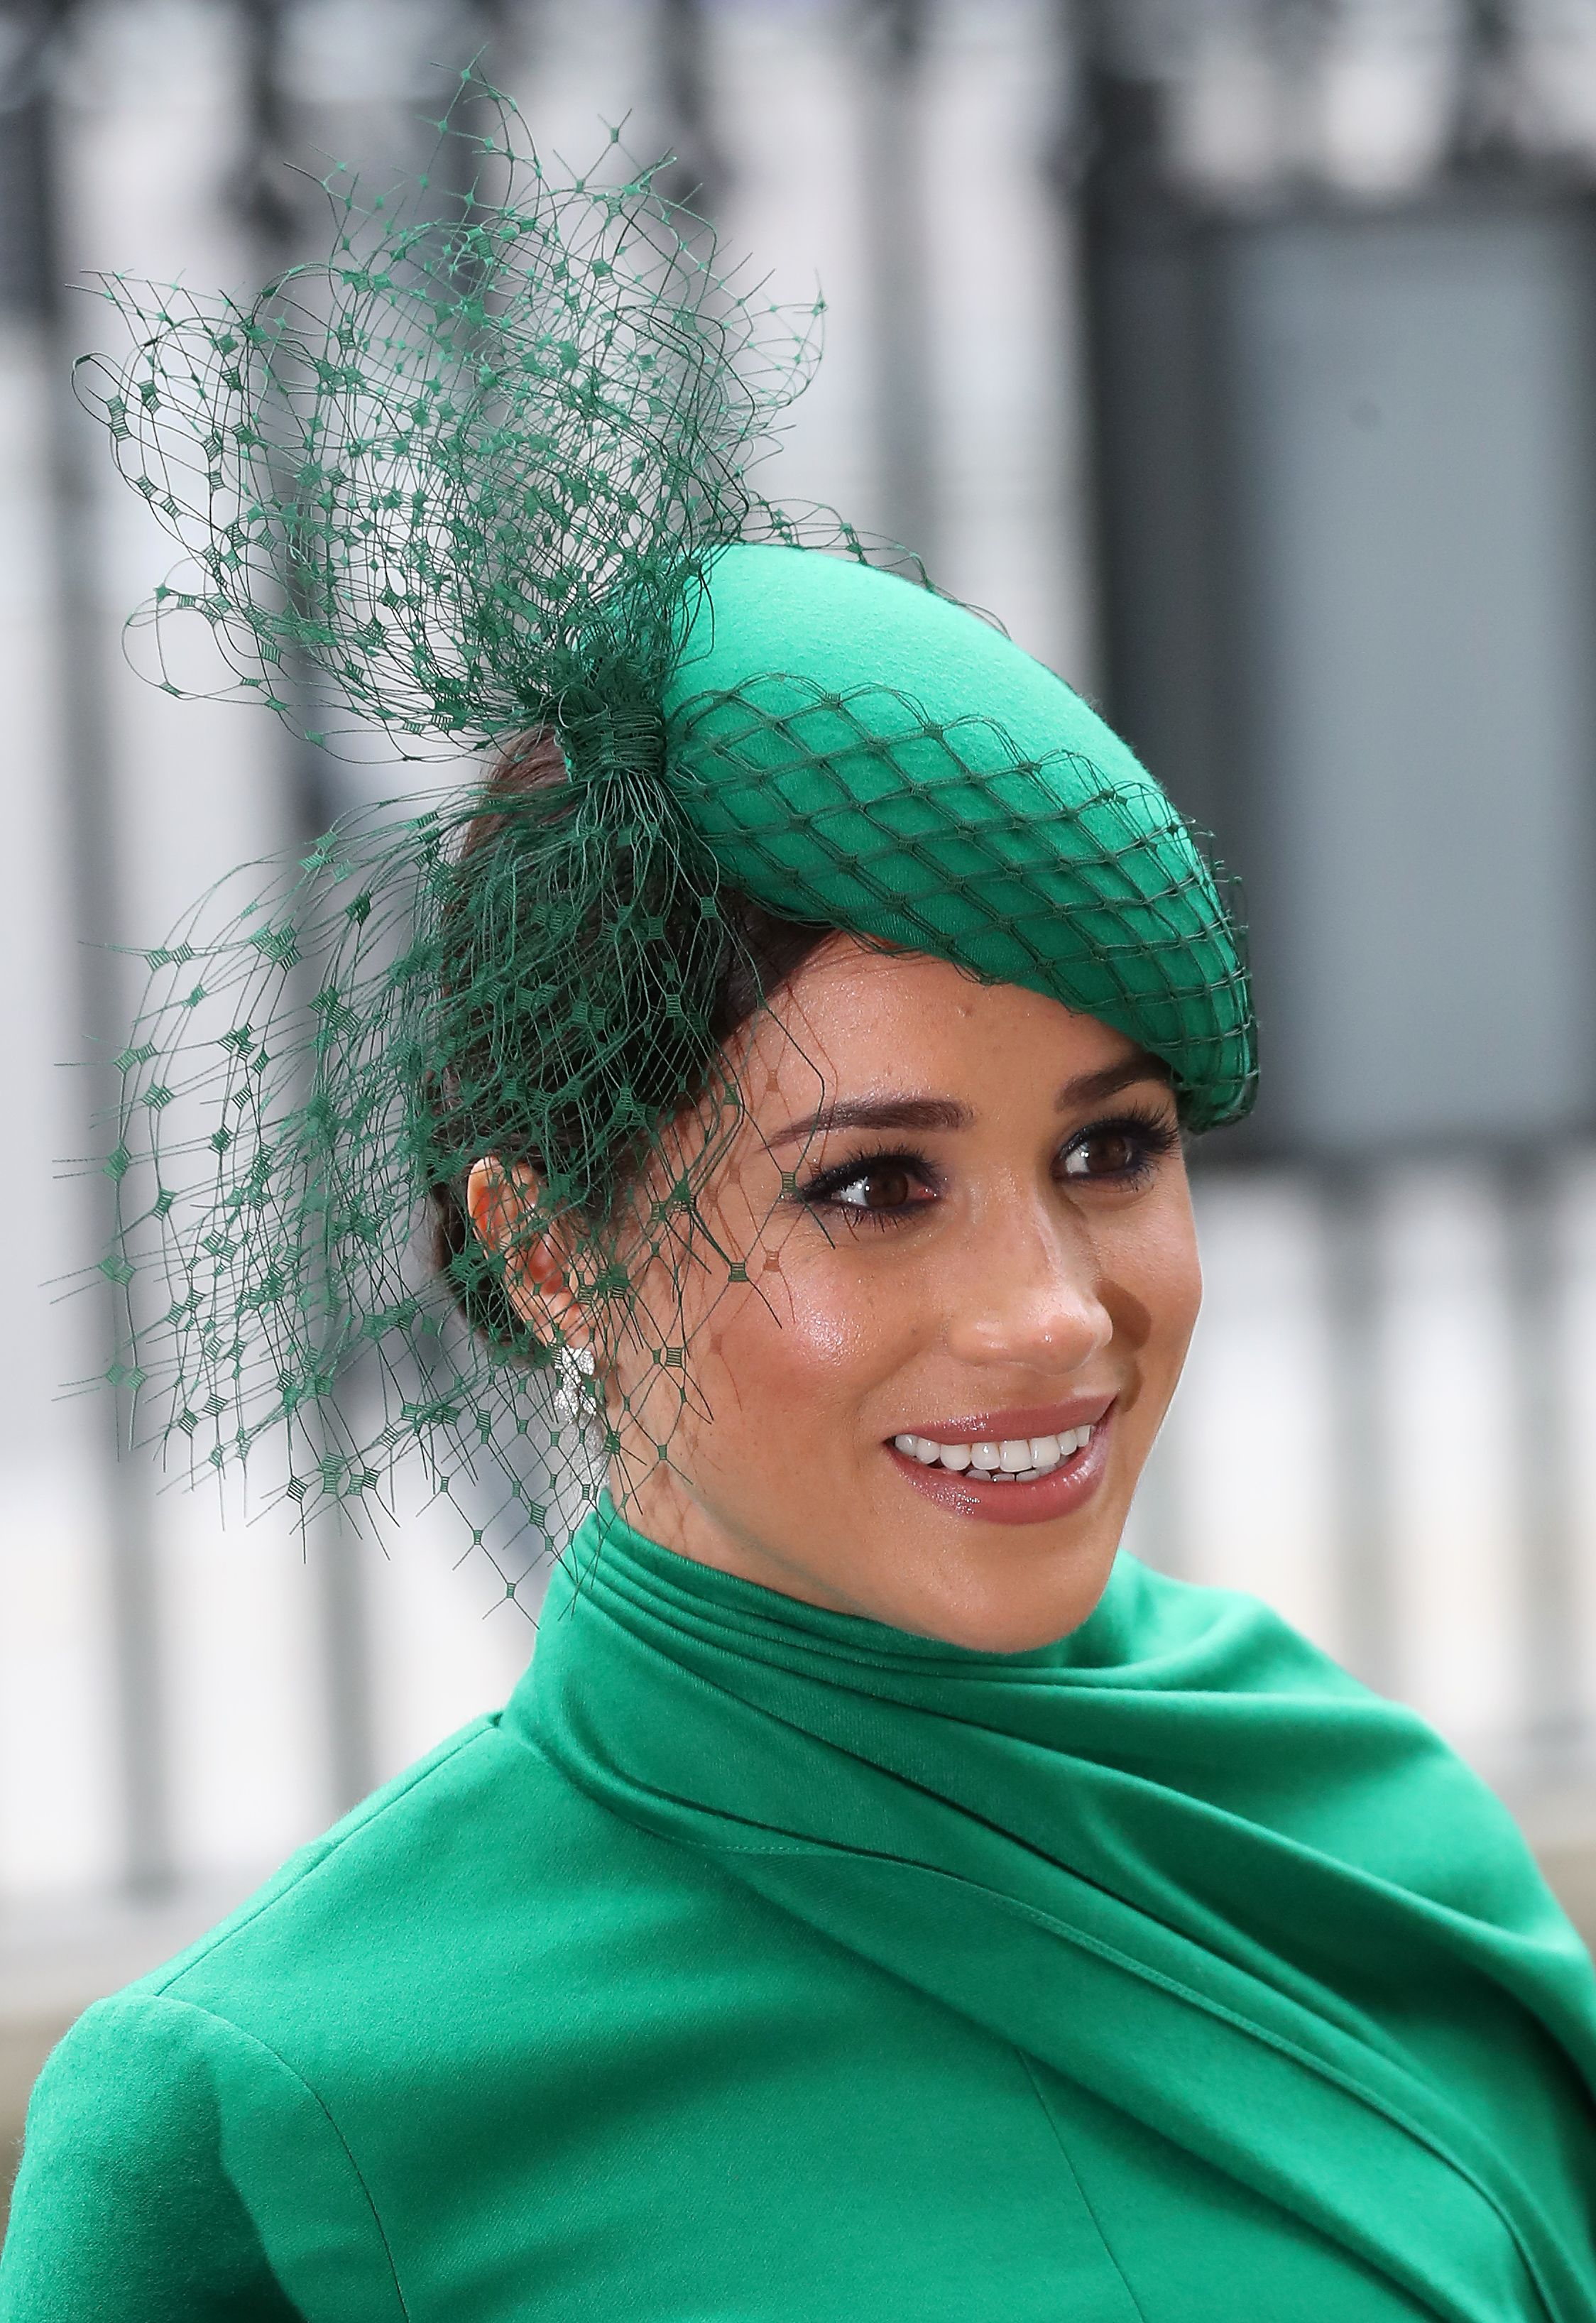 Duchess Meghan at the Commonwealth Day Service on March 09, 2020, in London, England | Photo: Chris Jackson/Getty Images